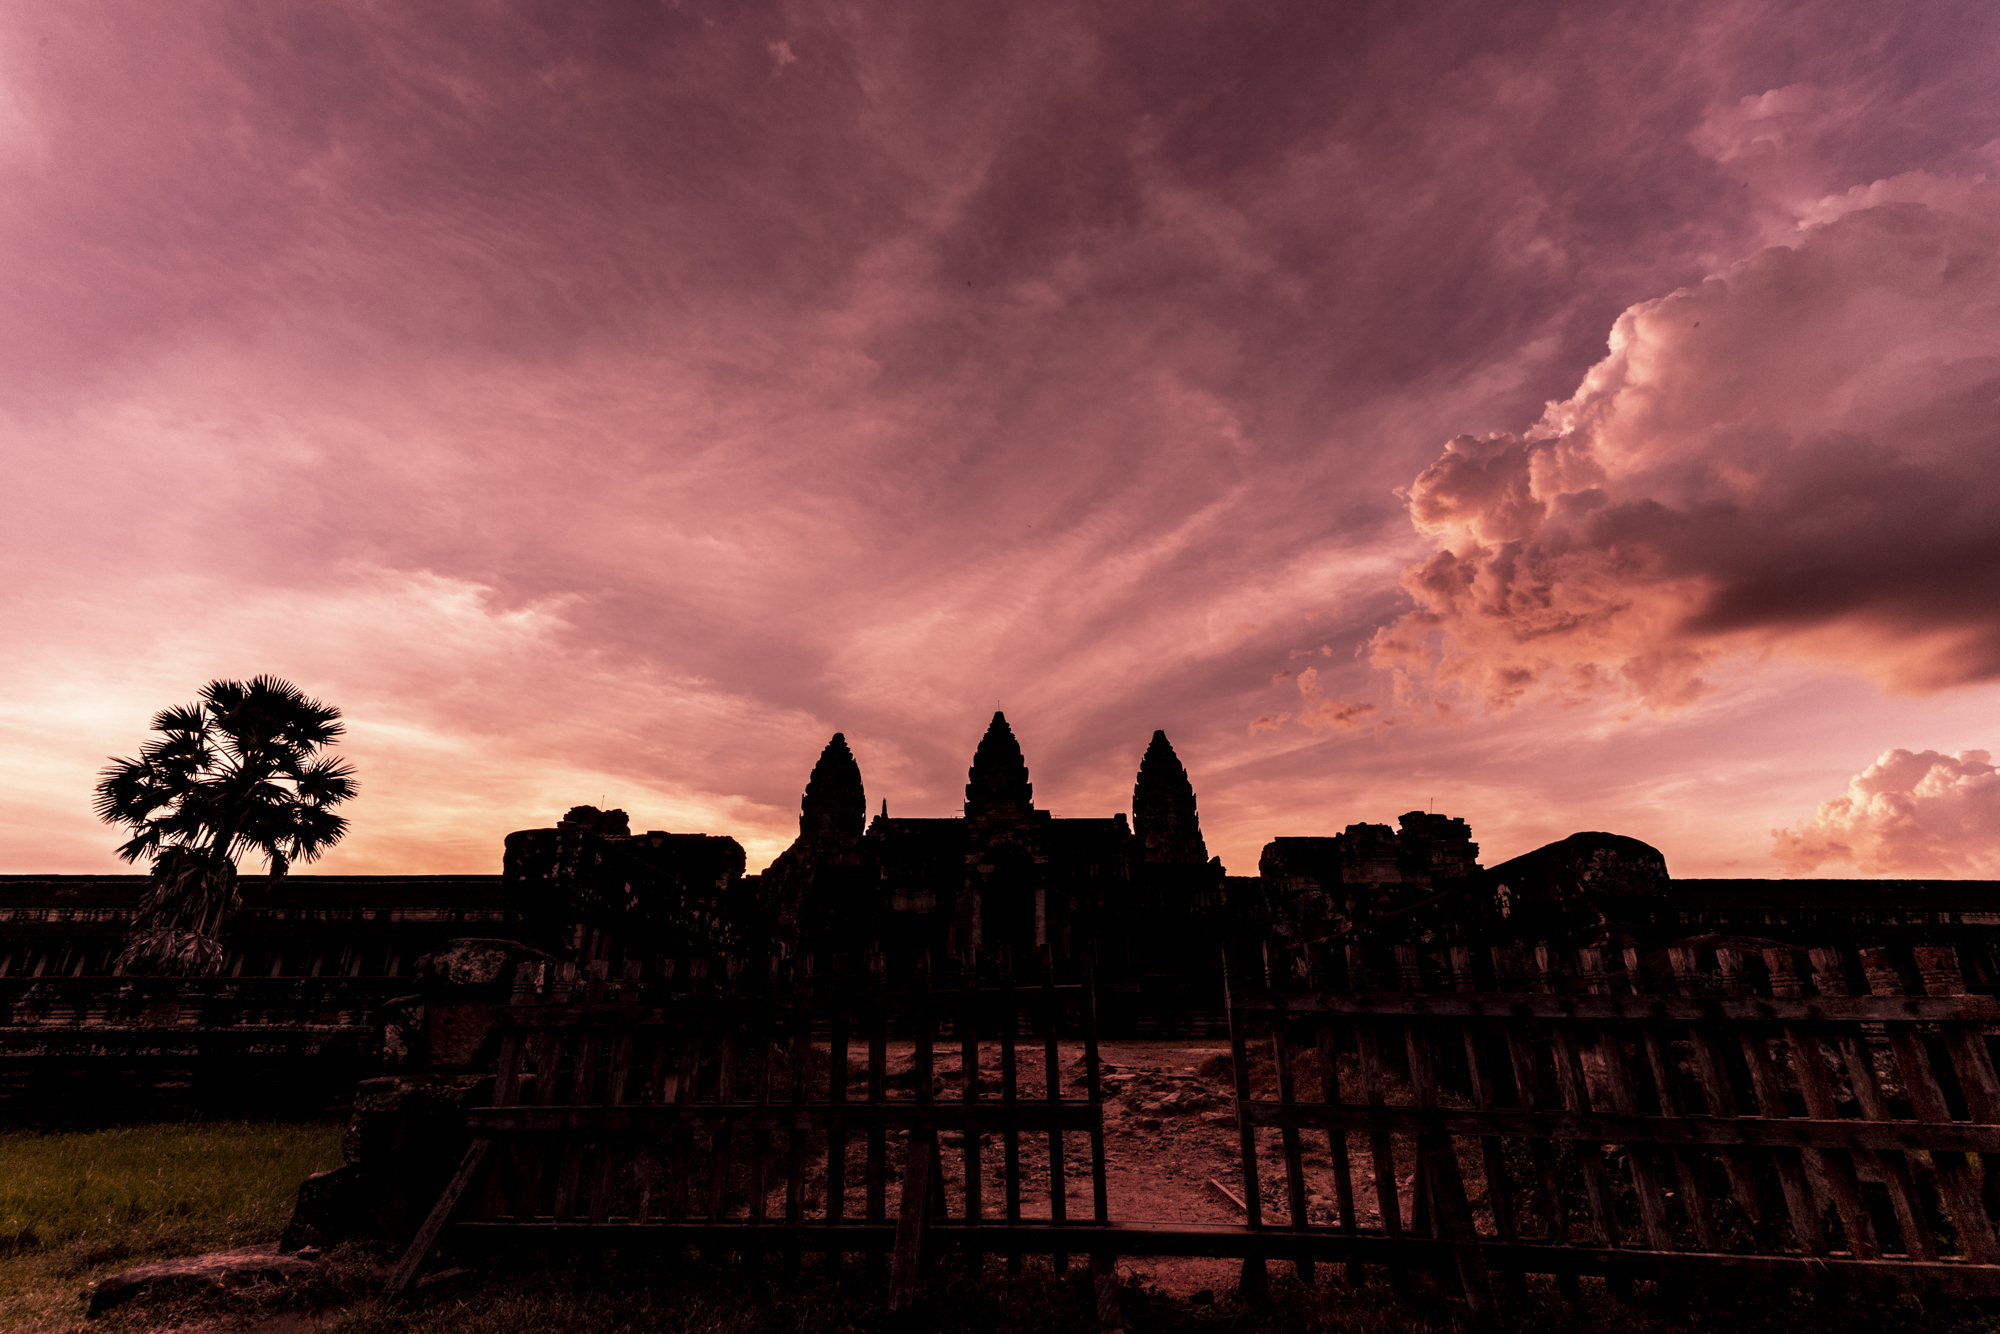 Sunset seen AngkorWat